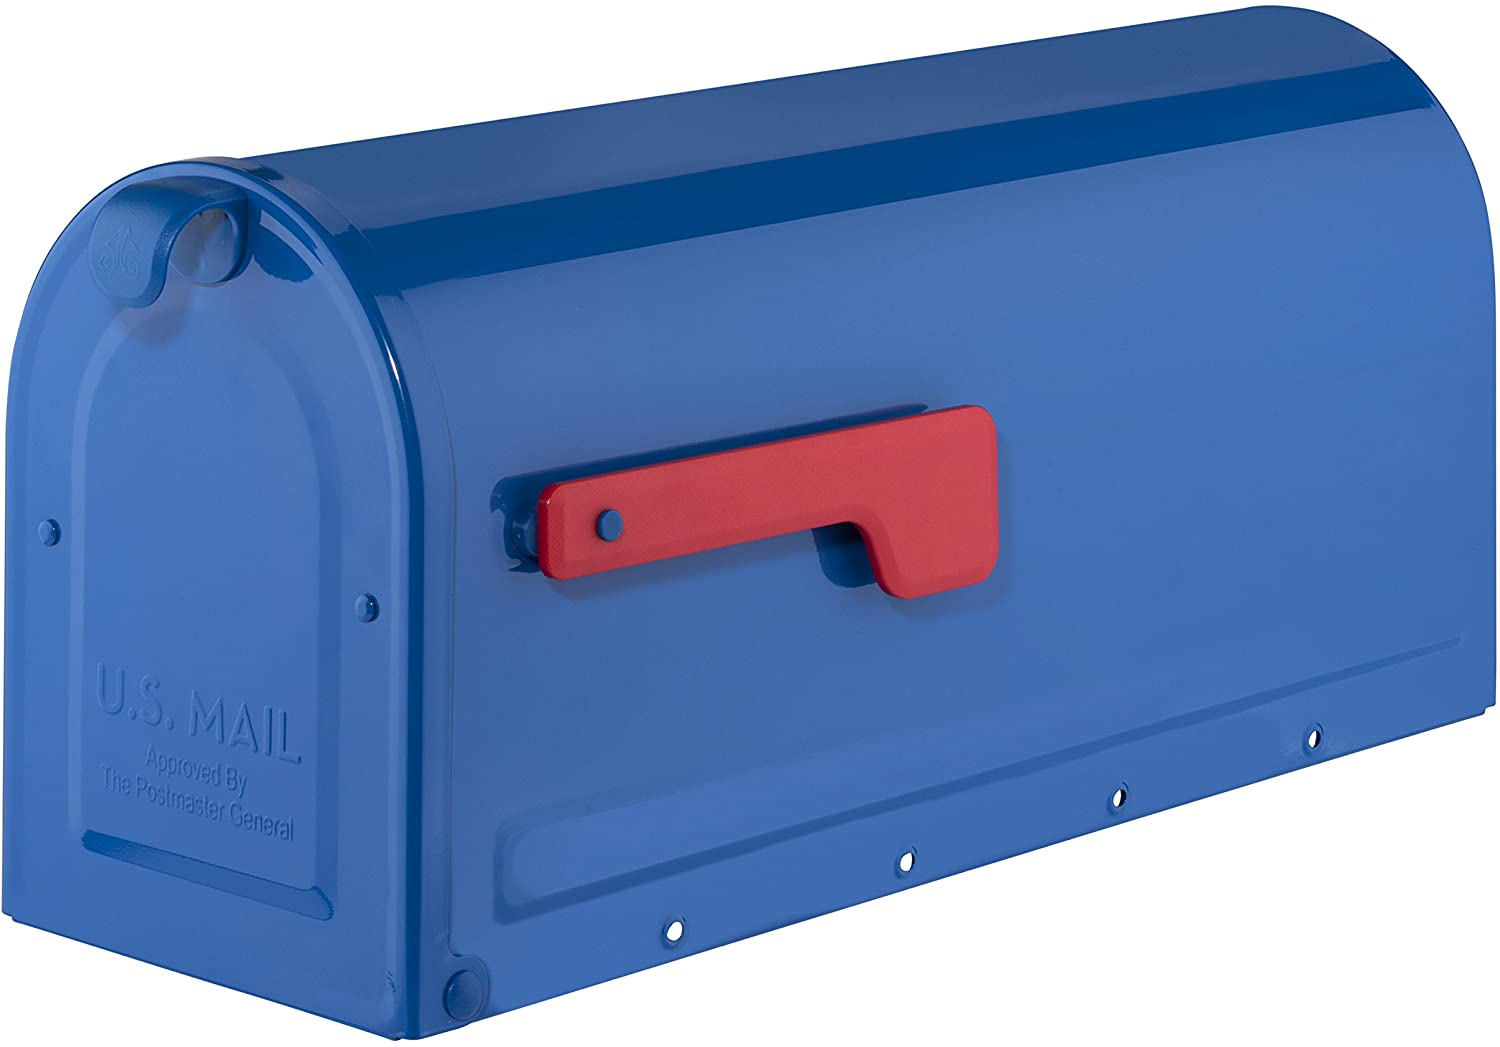 Architectural Mailboxes 7600BE Blue with Red Flag MB1 Post Mount Mailbox, Medium